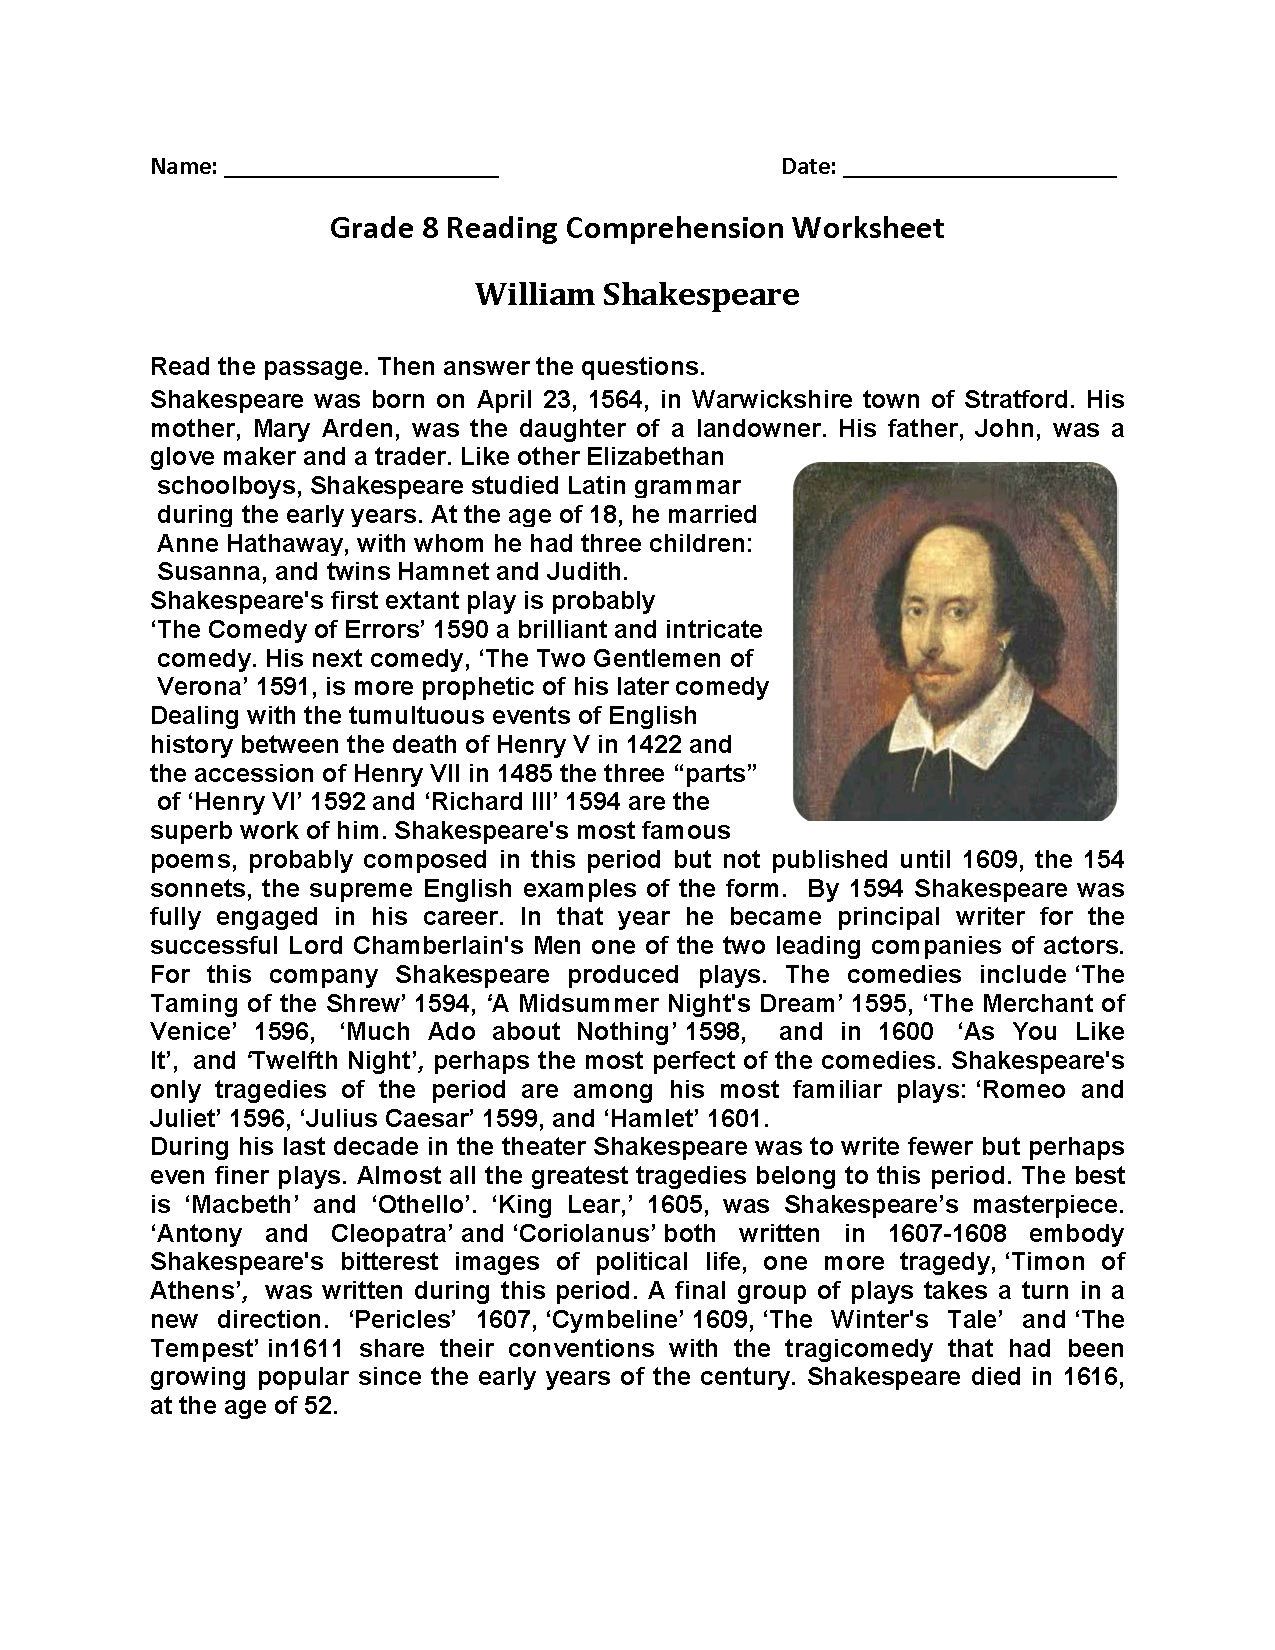 William Shakespeare Eighth Grade Reading Worksheets 8th Grade Reading Reading Worksheets Reading Comprehension [ 1650 x 1275 Pixel ]